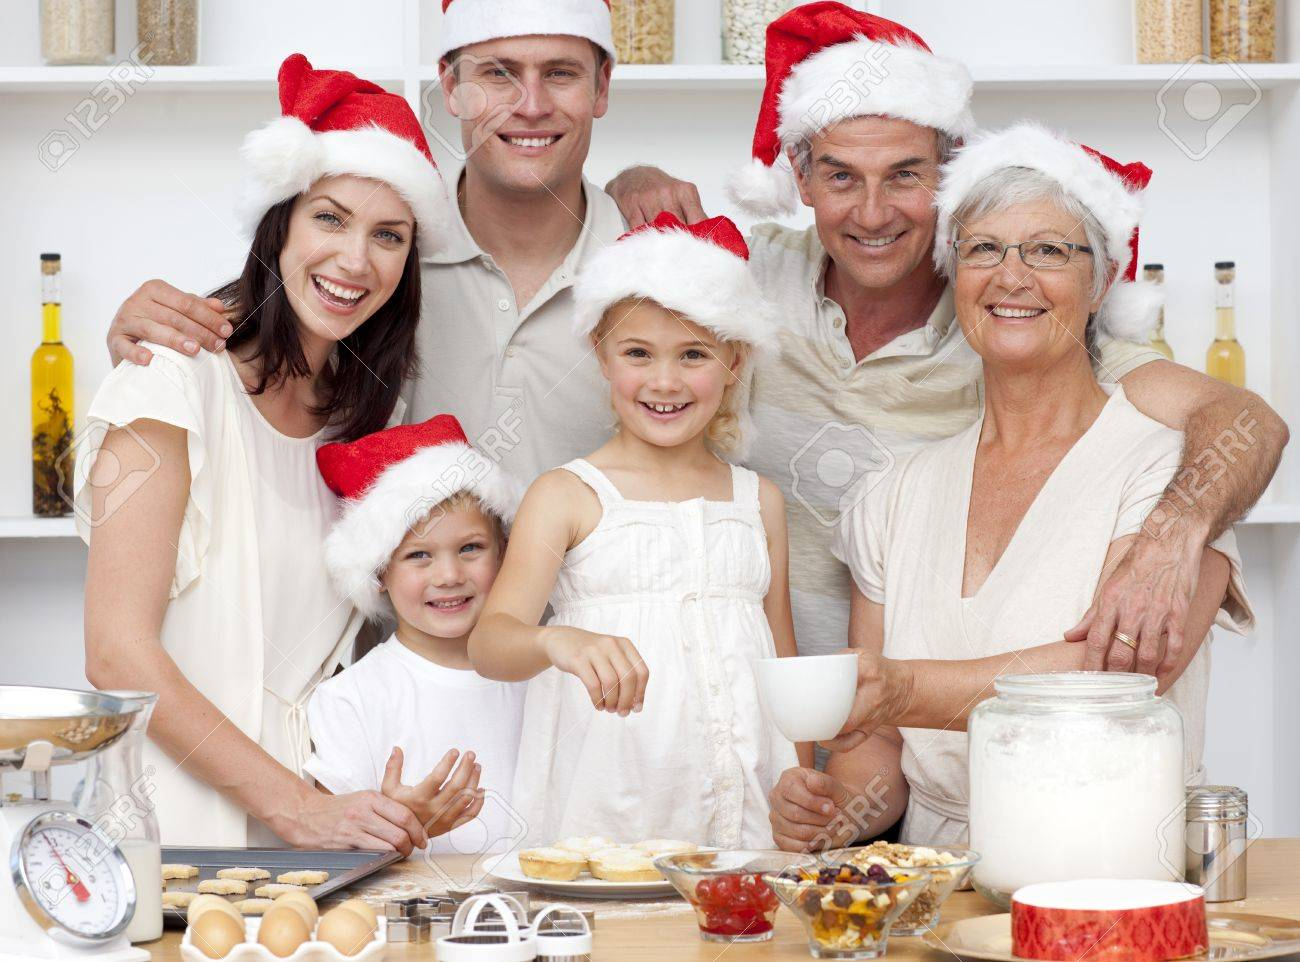 Children baking Christmas cakes in the kitchen with their family Stock Photo - 10107405